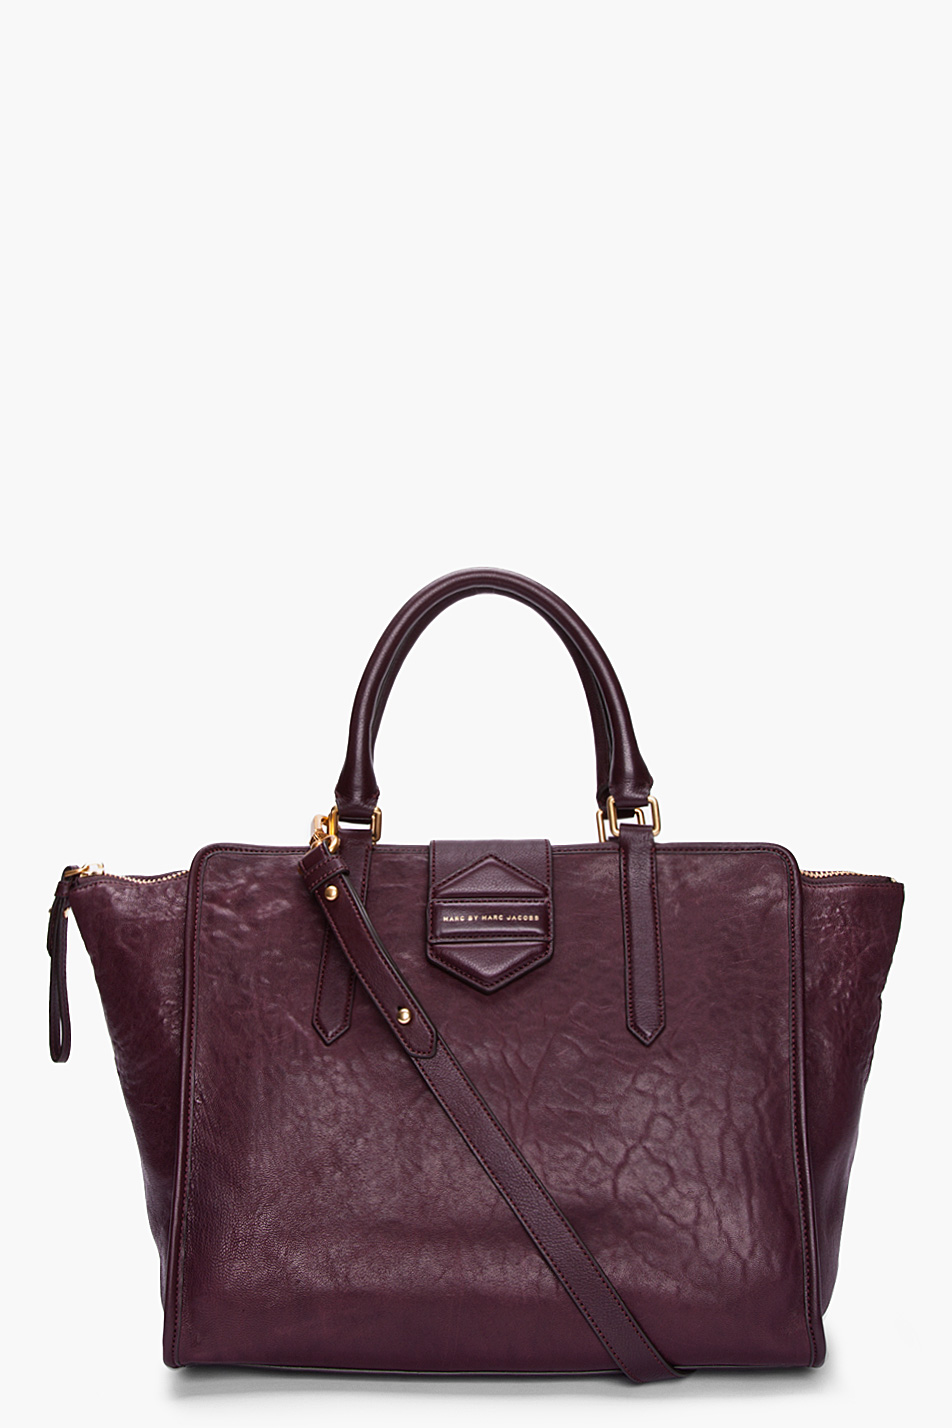 Shut Up I Love This Marc Jacobs Leather Tote